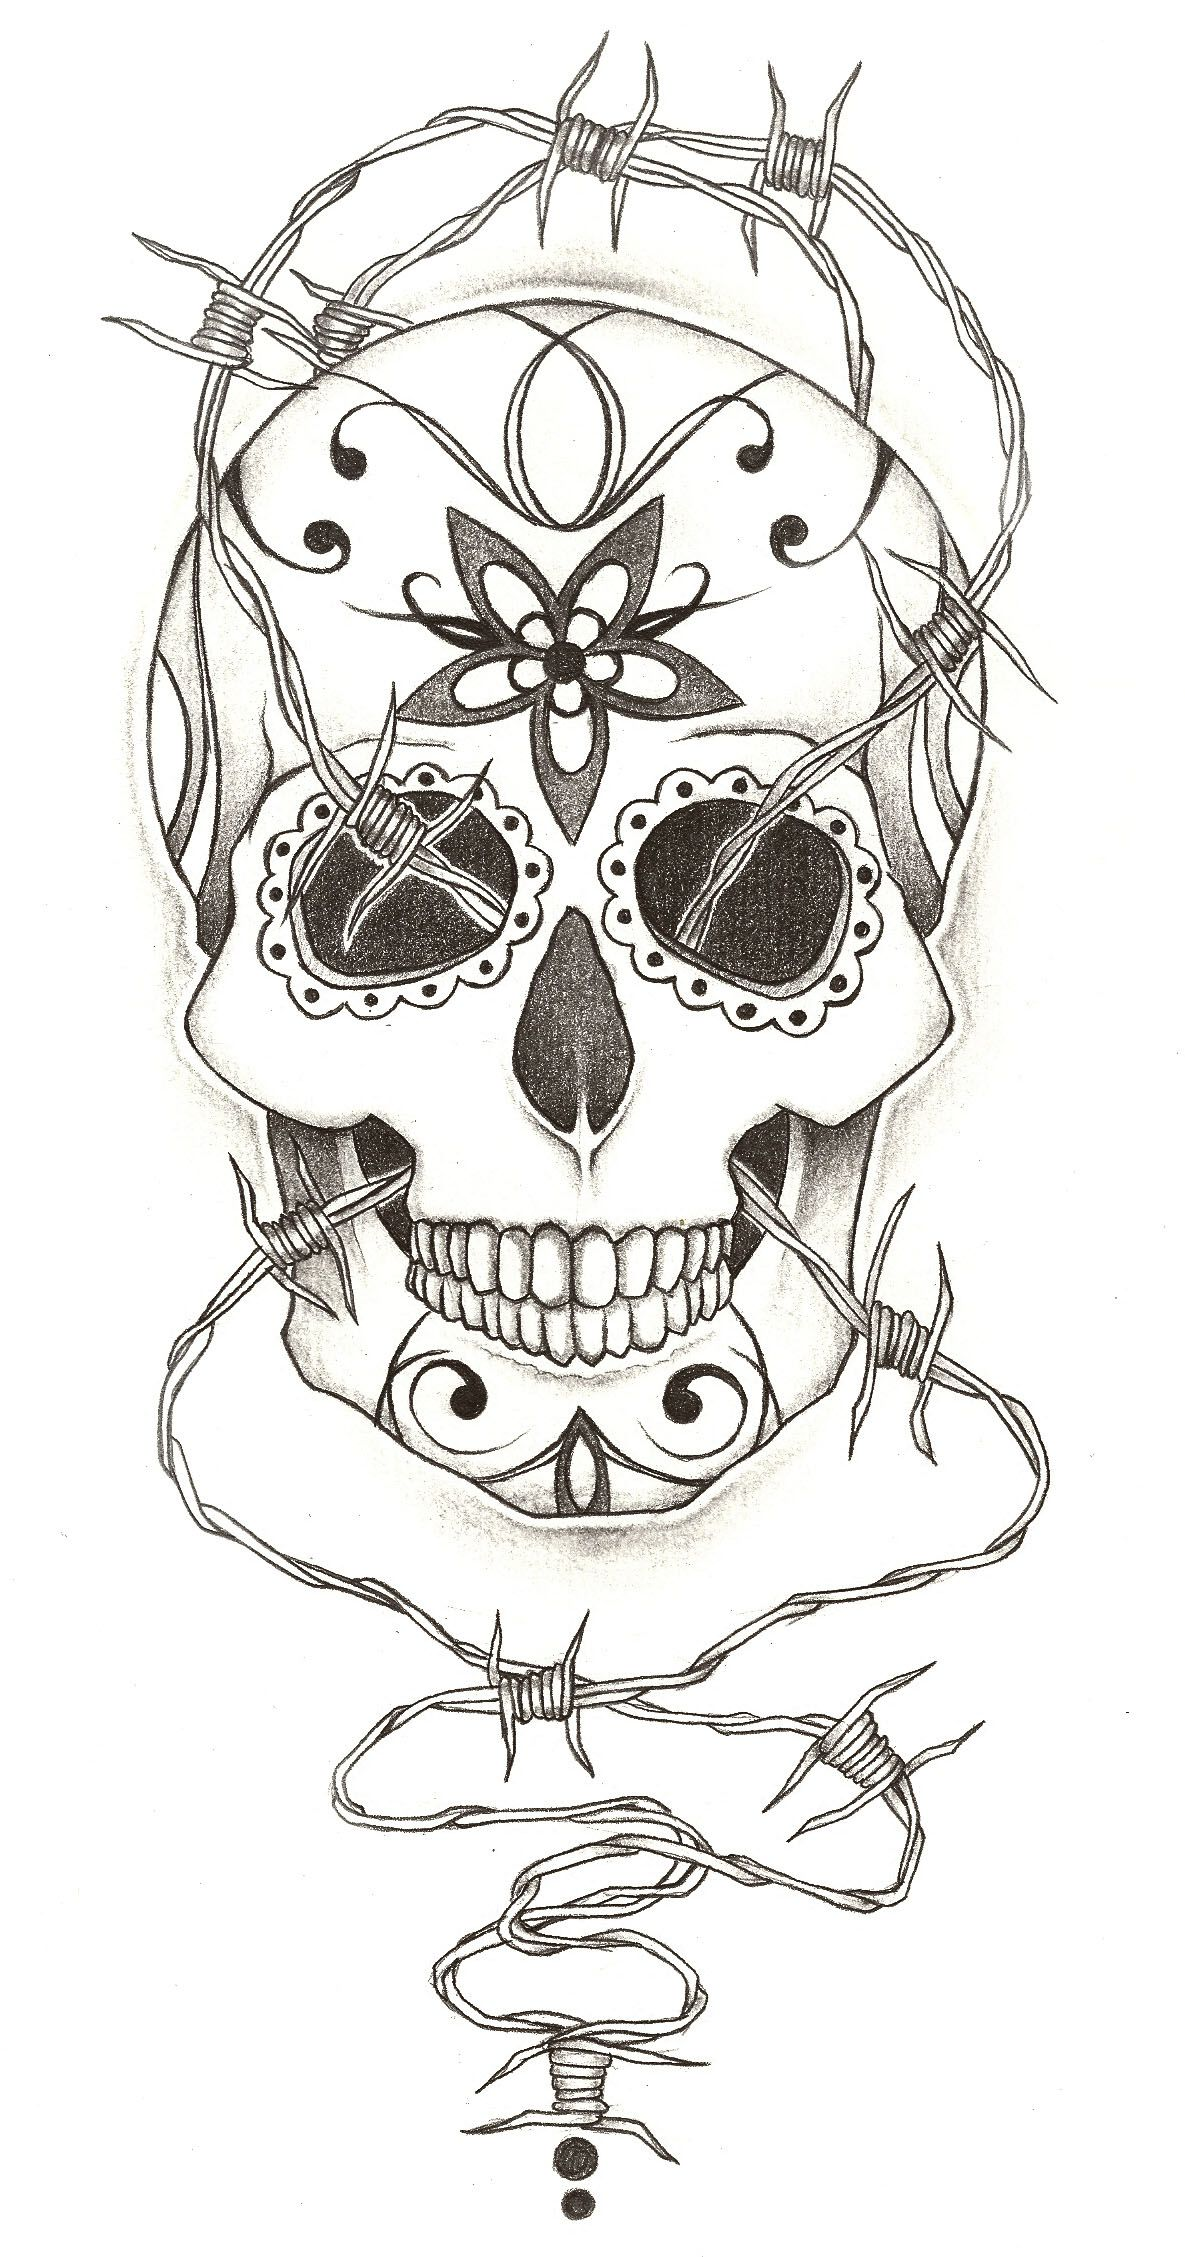 Drawings Of Skulls With Barbed Wire - WIRE Center •